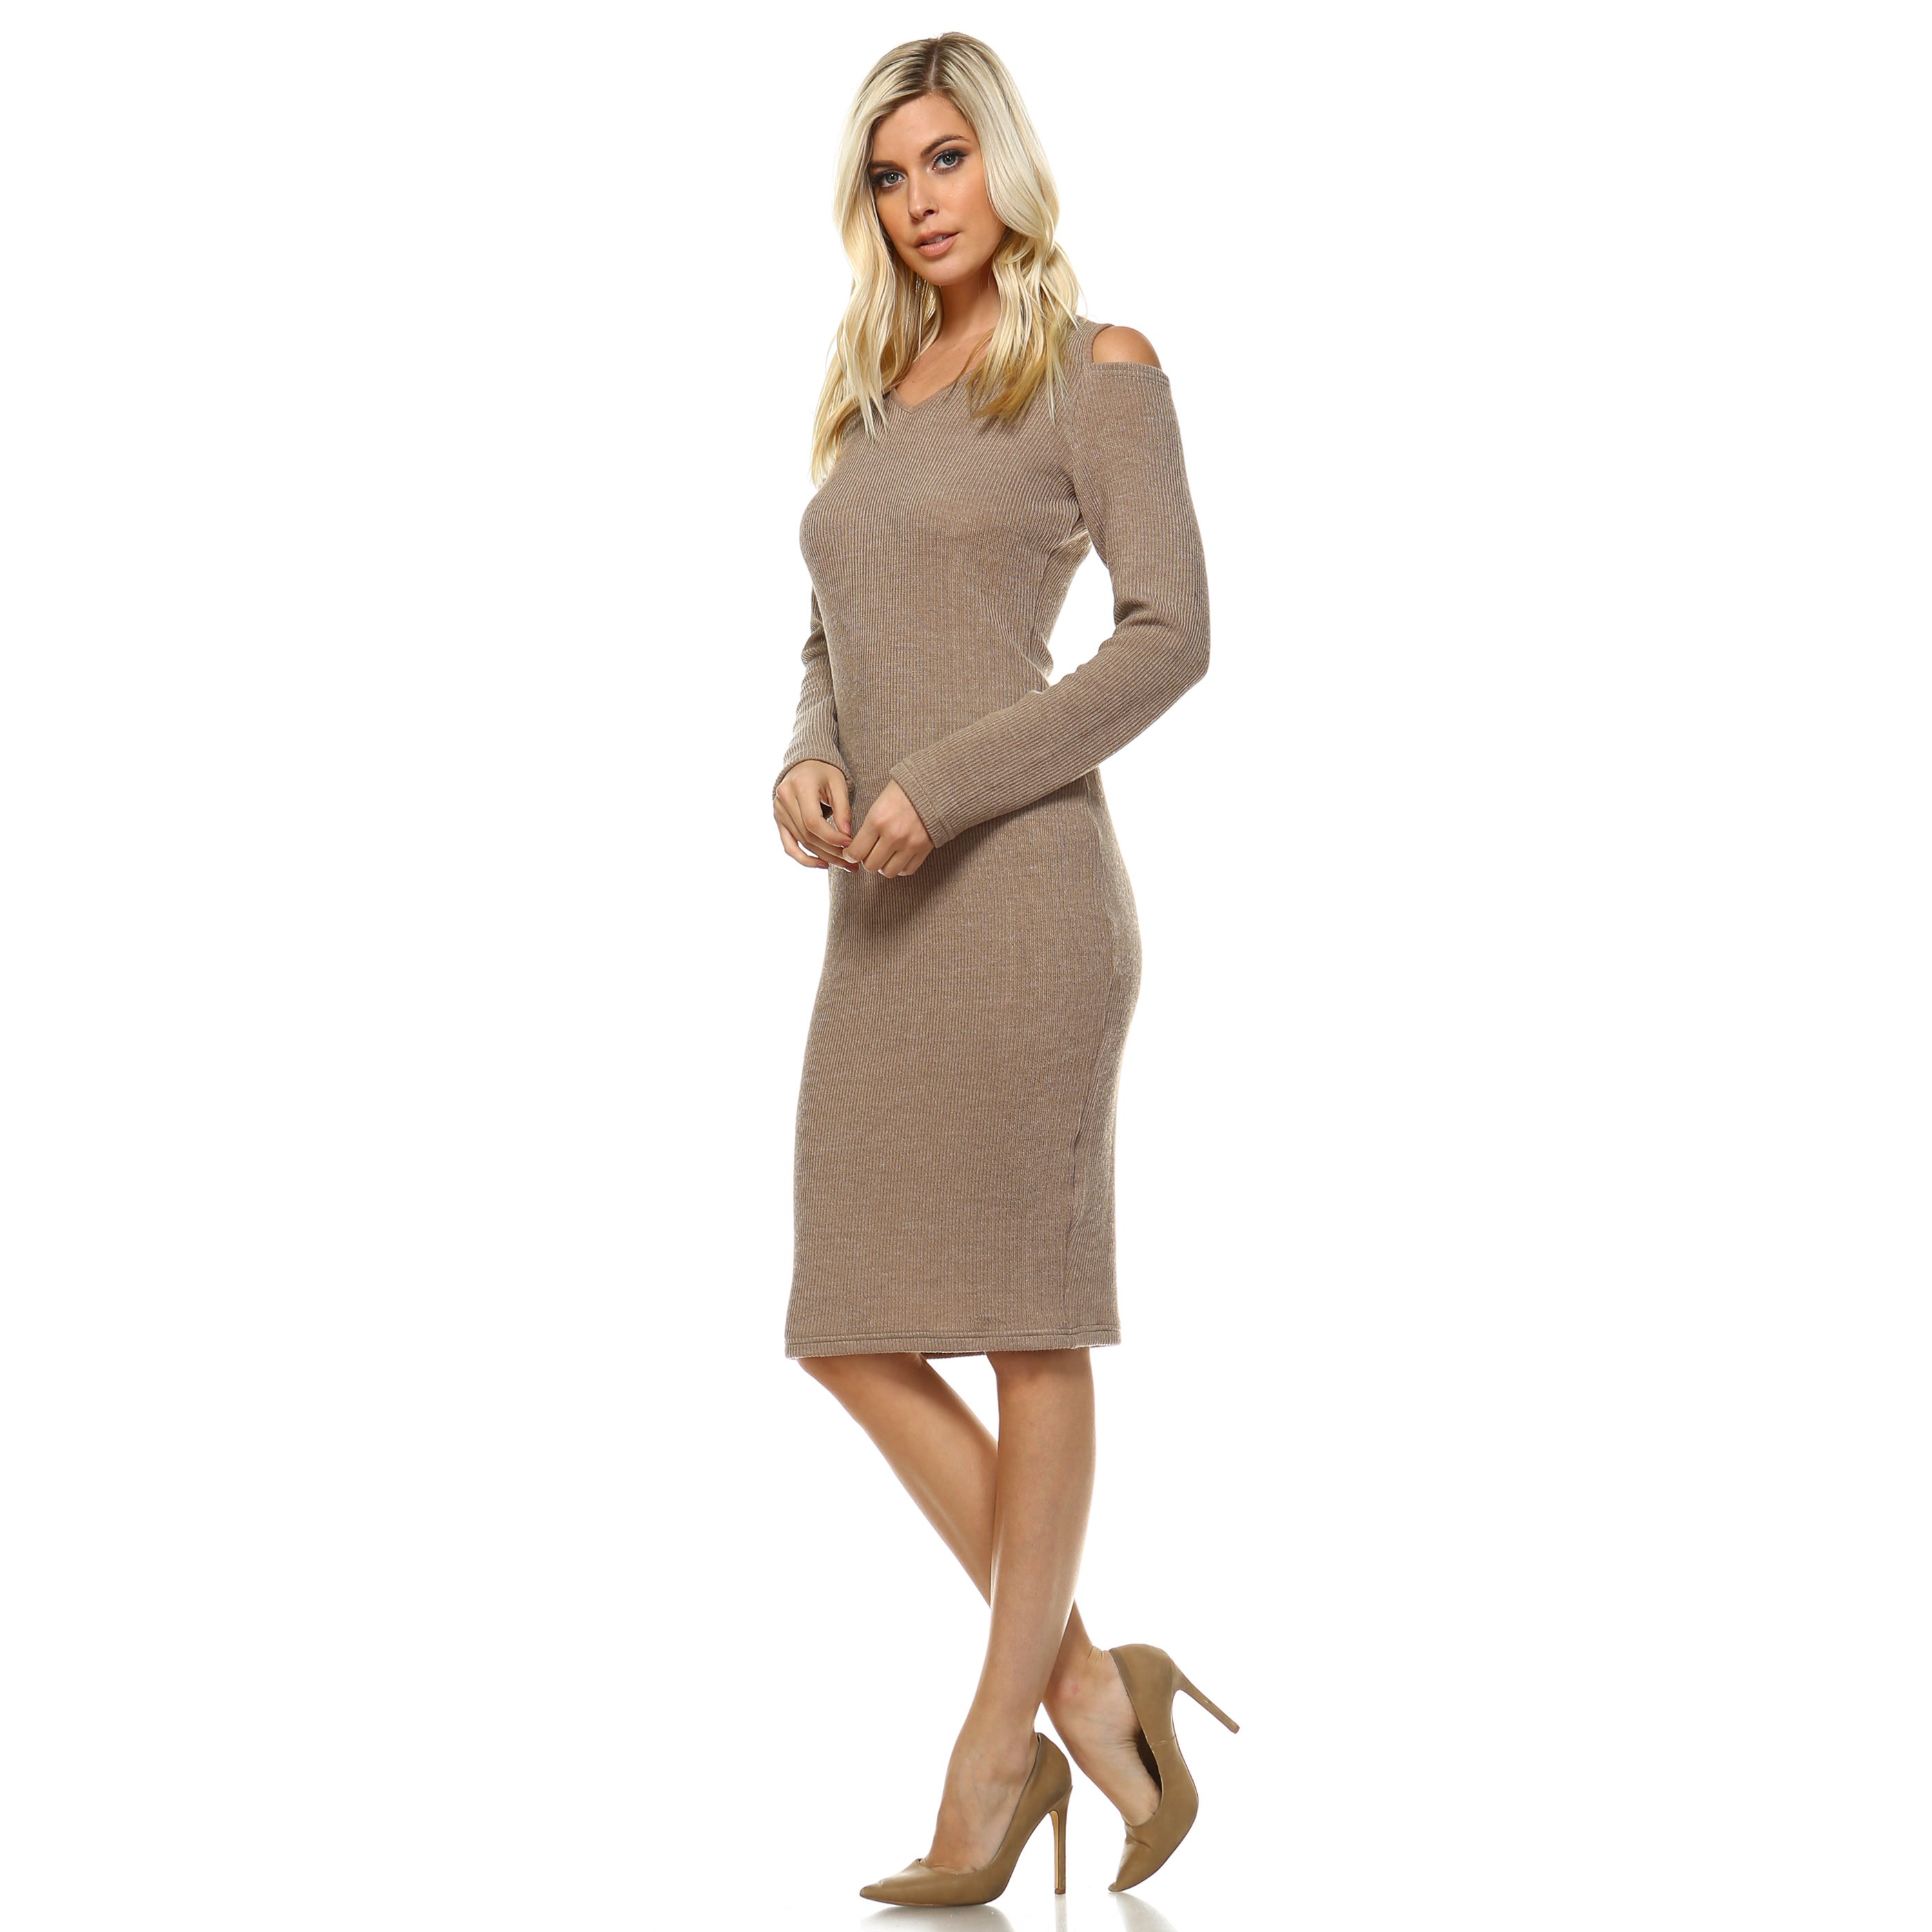 f7ba7a30ffe Shop White Mark Women s Taline Cutout Shoulder Midi Sweater Dress - Free  Shipping On Orders Over  45 - Overstock - 14506565